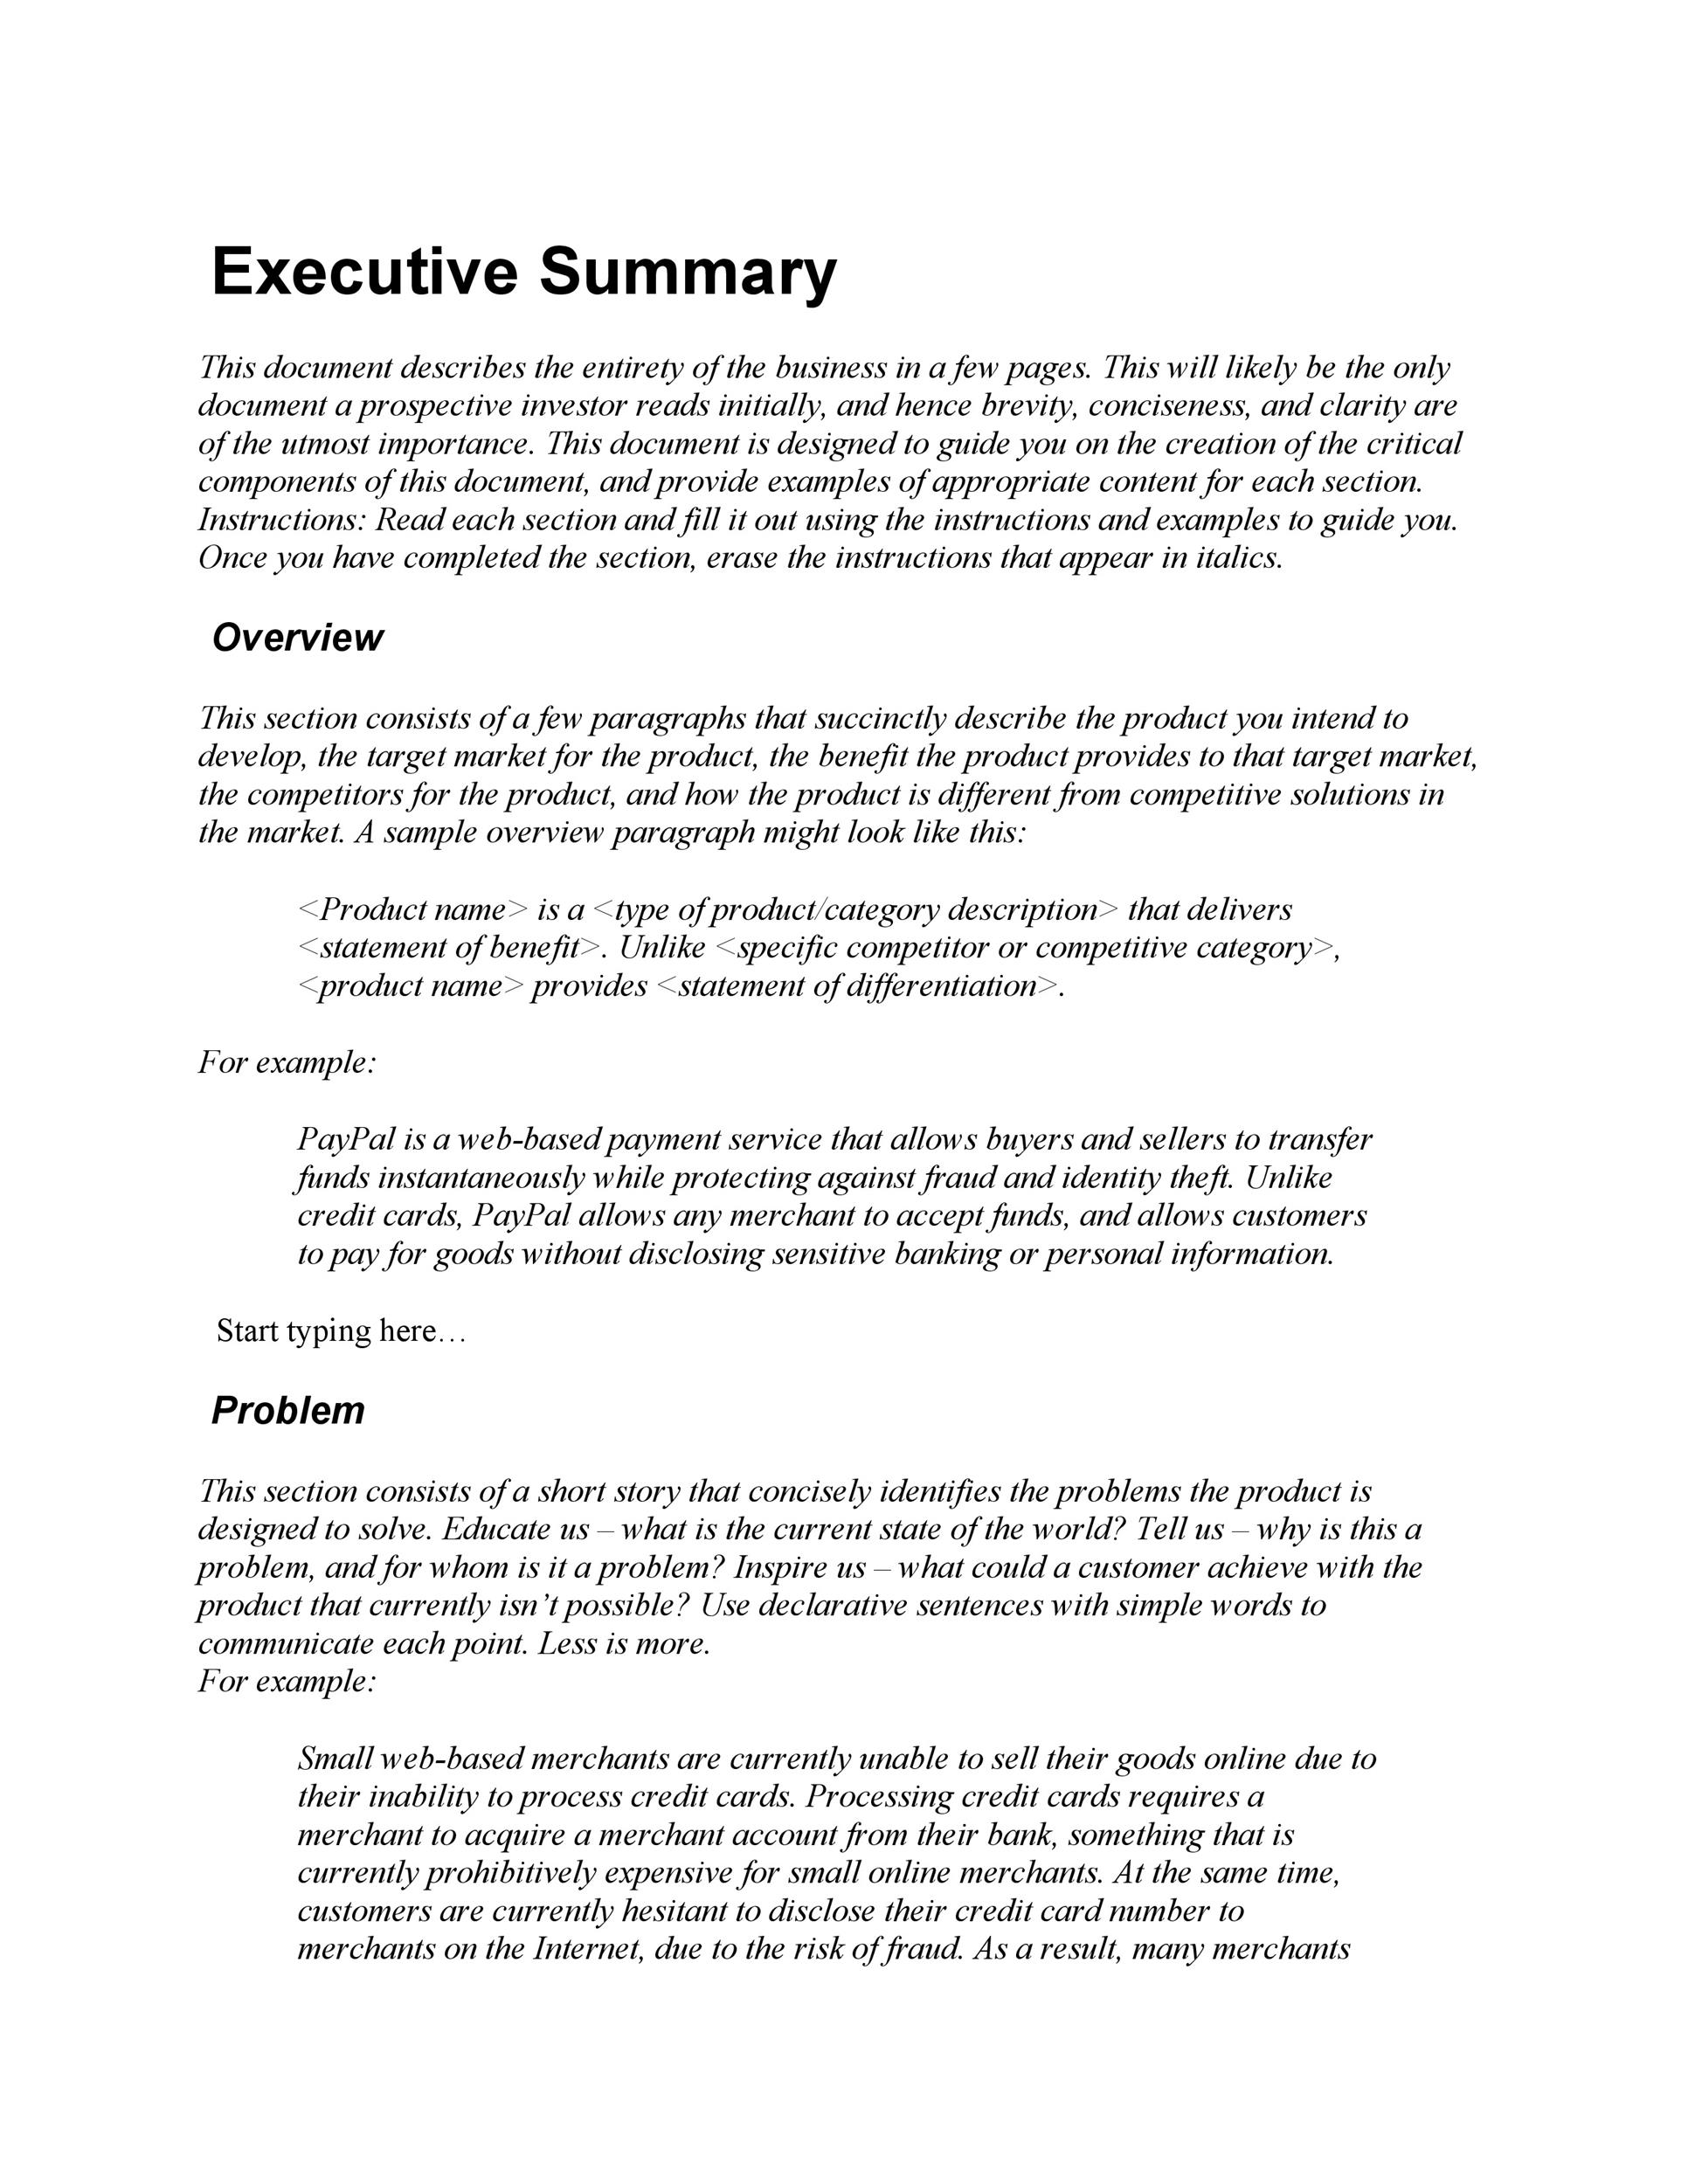 executive summary essay An effective executive summary can mean the difference between a client win and the recycle bin here's how to write an executive summary that sells.